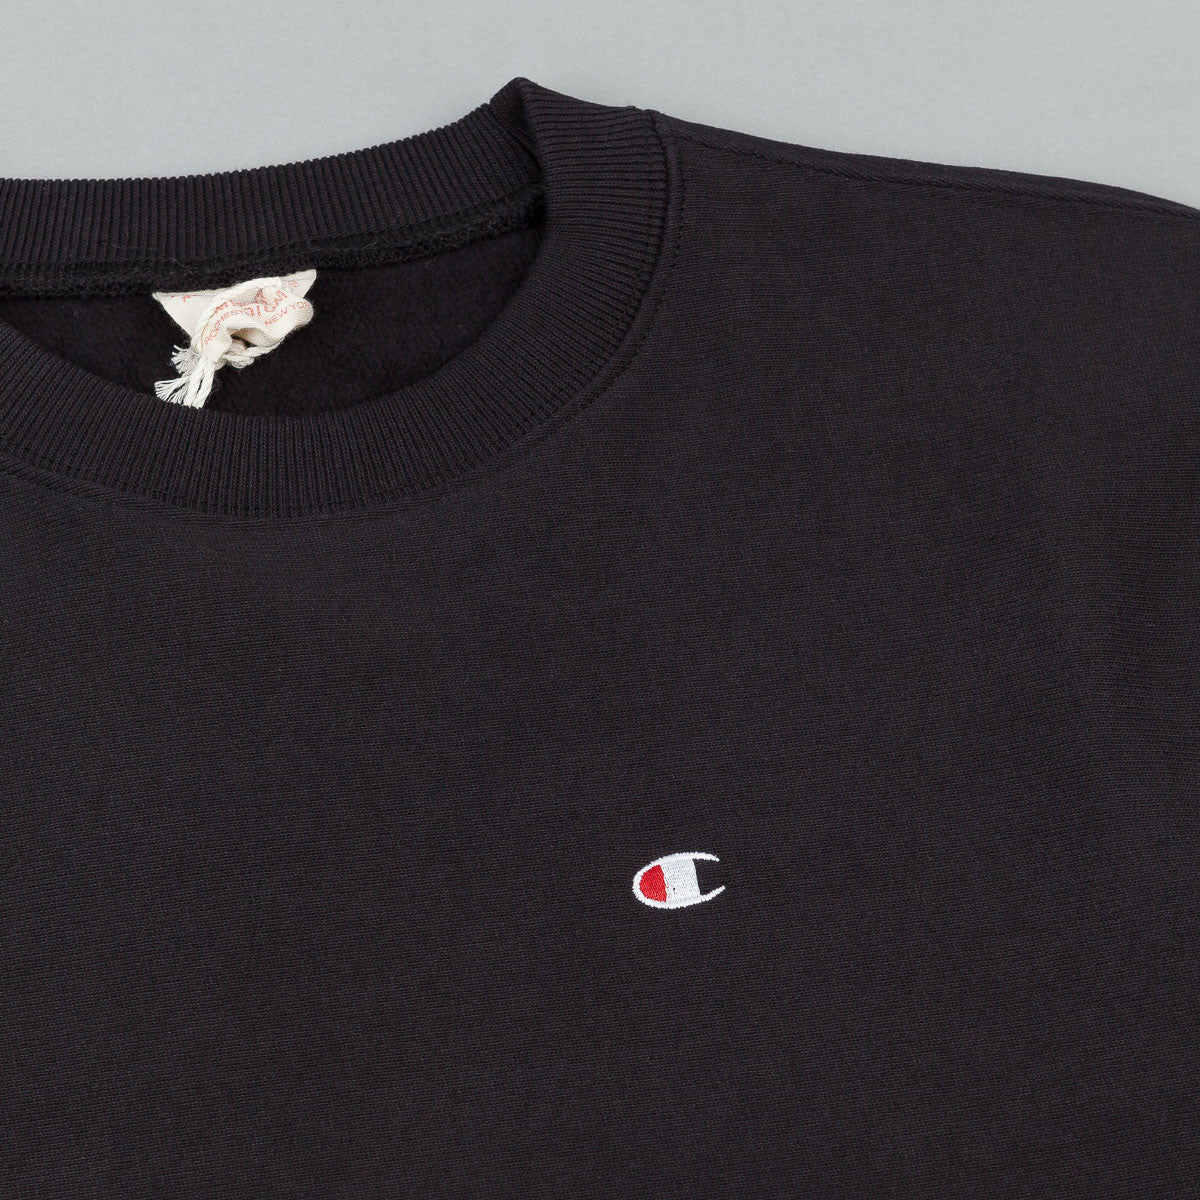 Champion Small C Reverse Weave Crew Neck Sweatshirt - Black